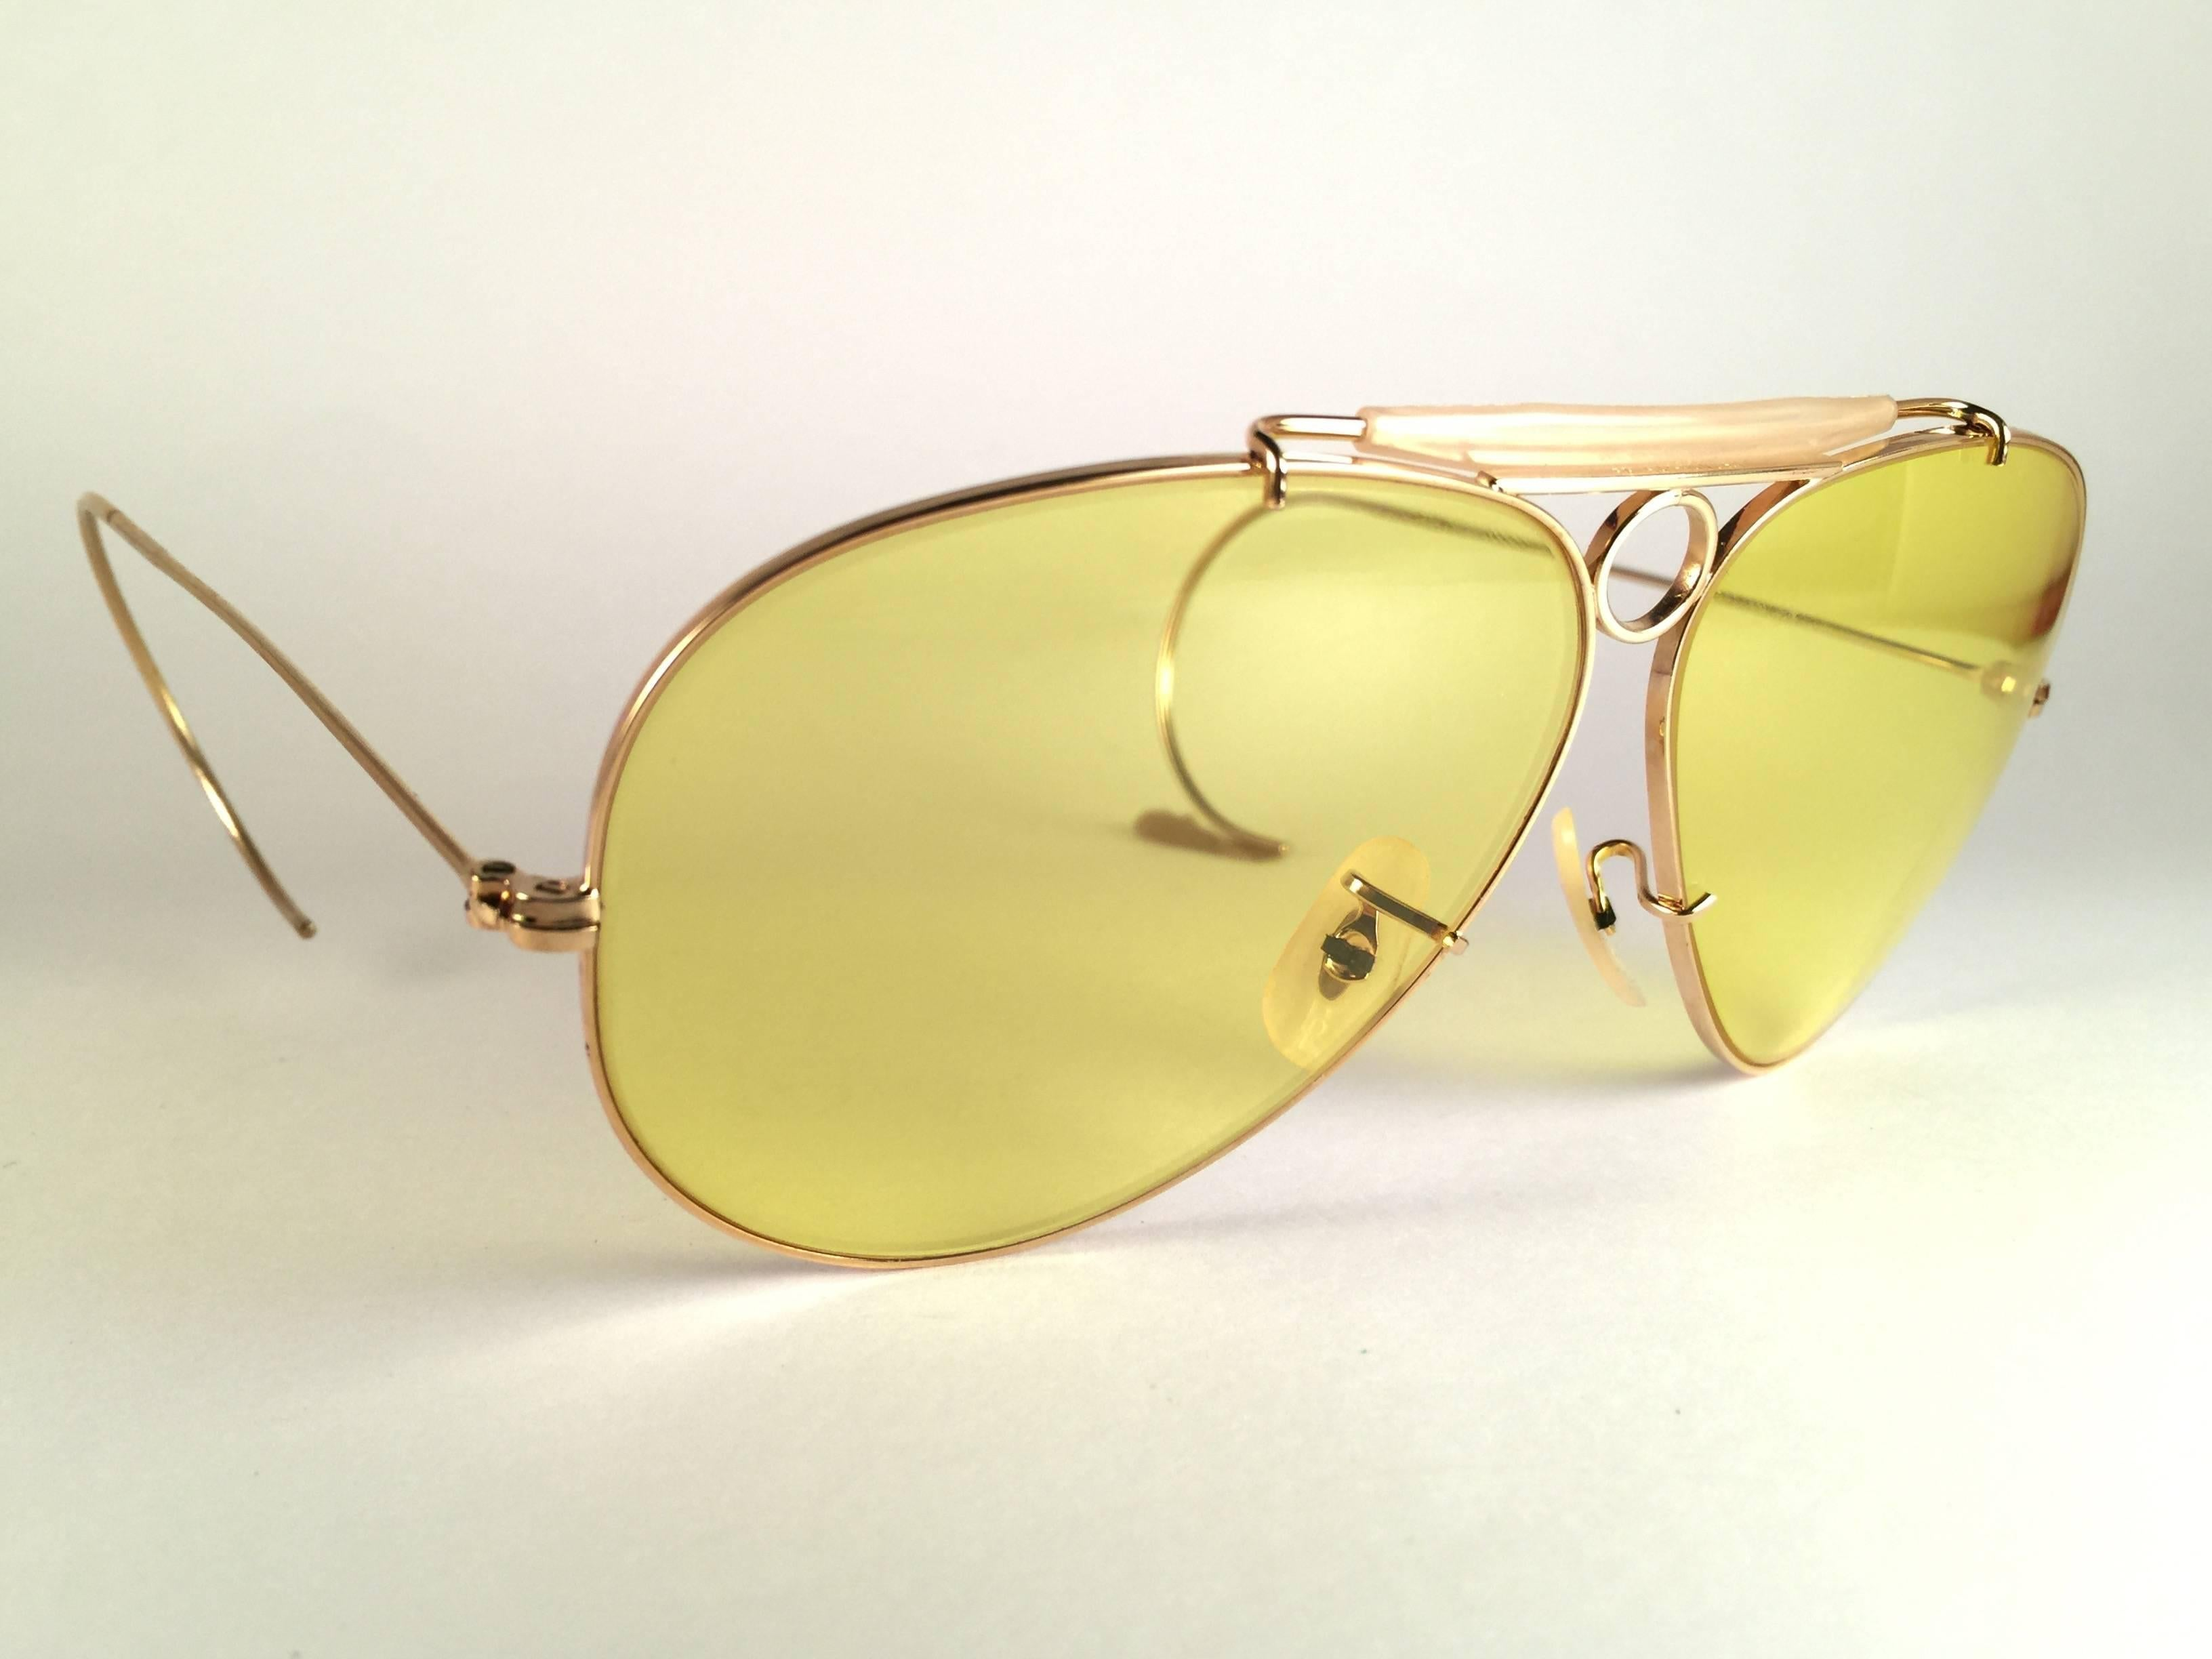 98a5ad6cb1ee4 New Vintage Ray Ban Kalichrome Shooter Gold 62Mm 1960 s B L Sunglasses For  Sale at 1stdibs